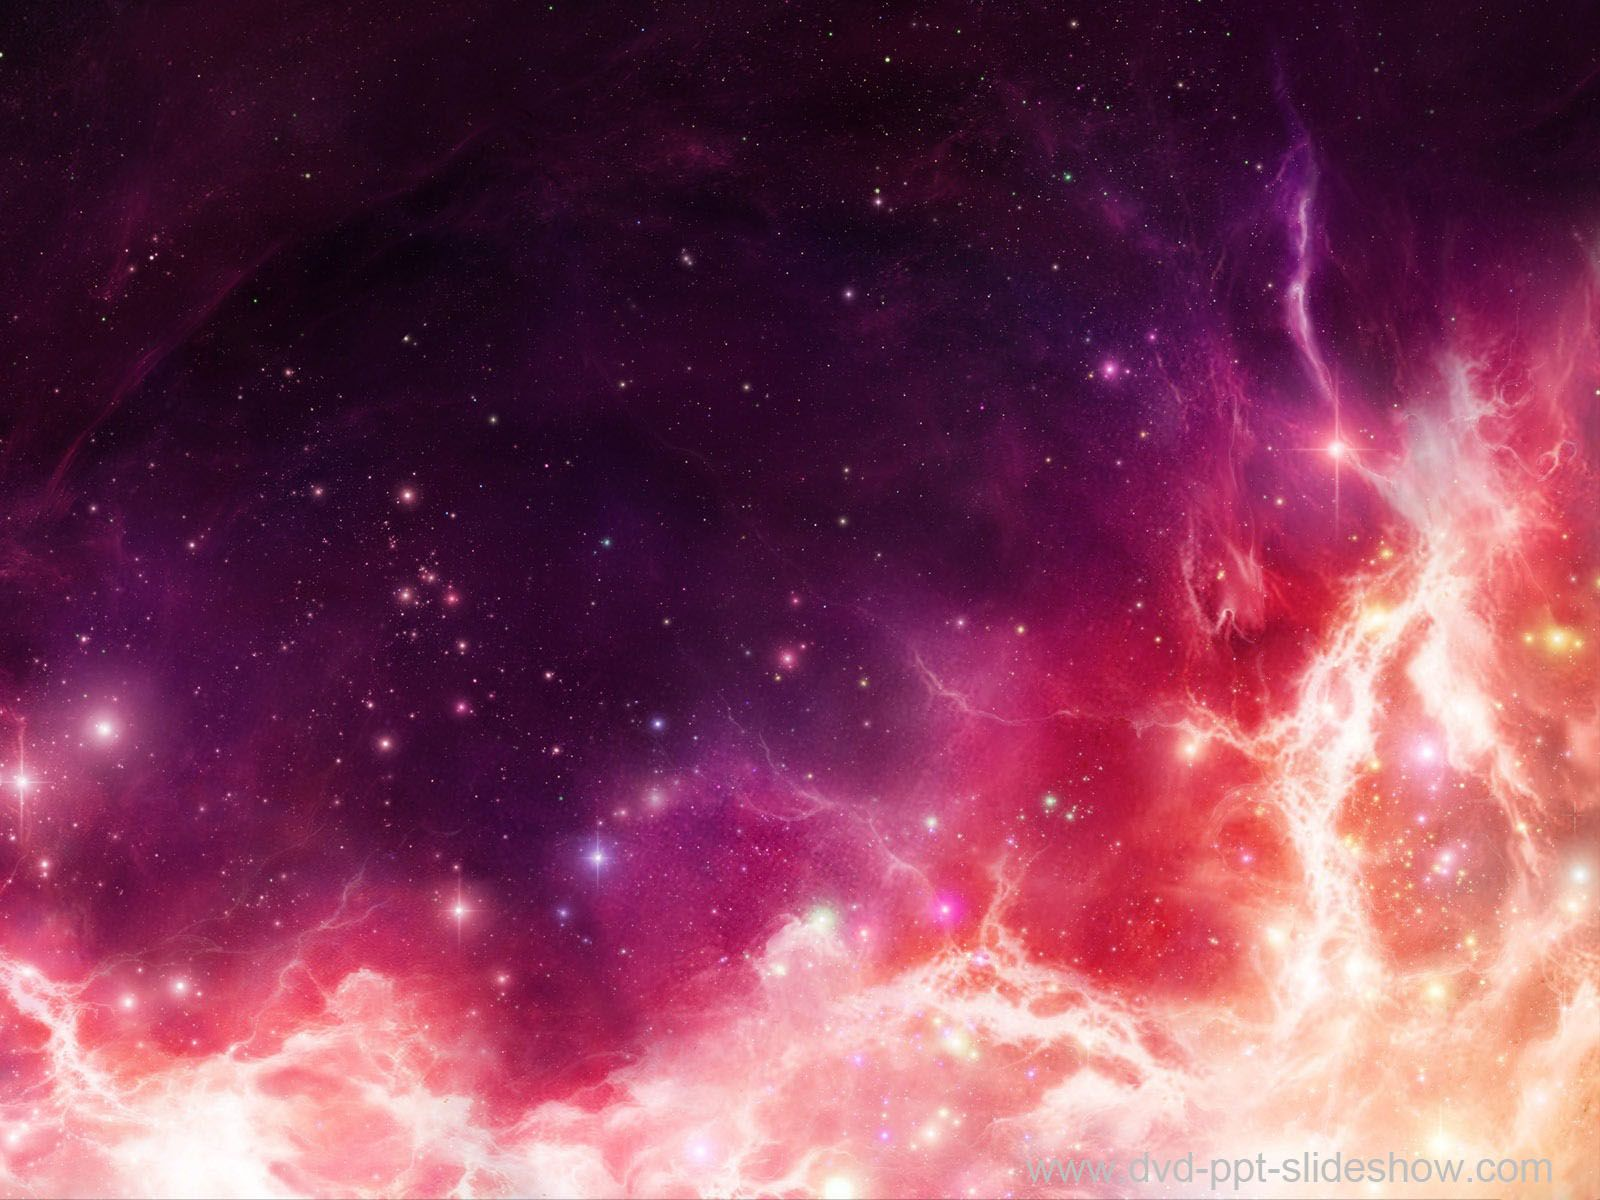 anime space universe wallpaper a search results auniverse space download wallpaper pinterest universe artwork and wallpaper